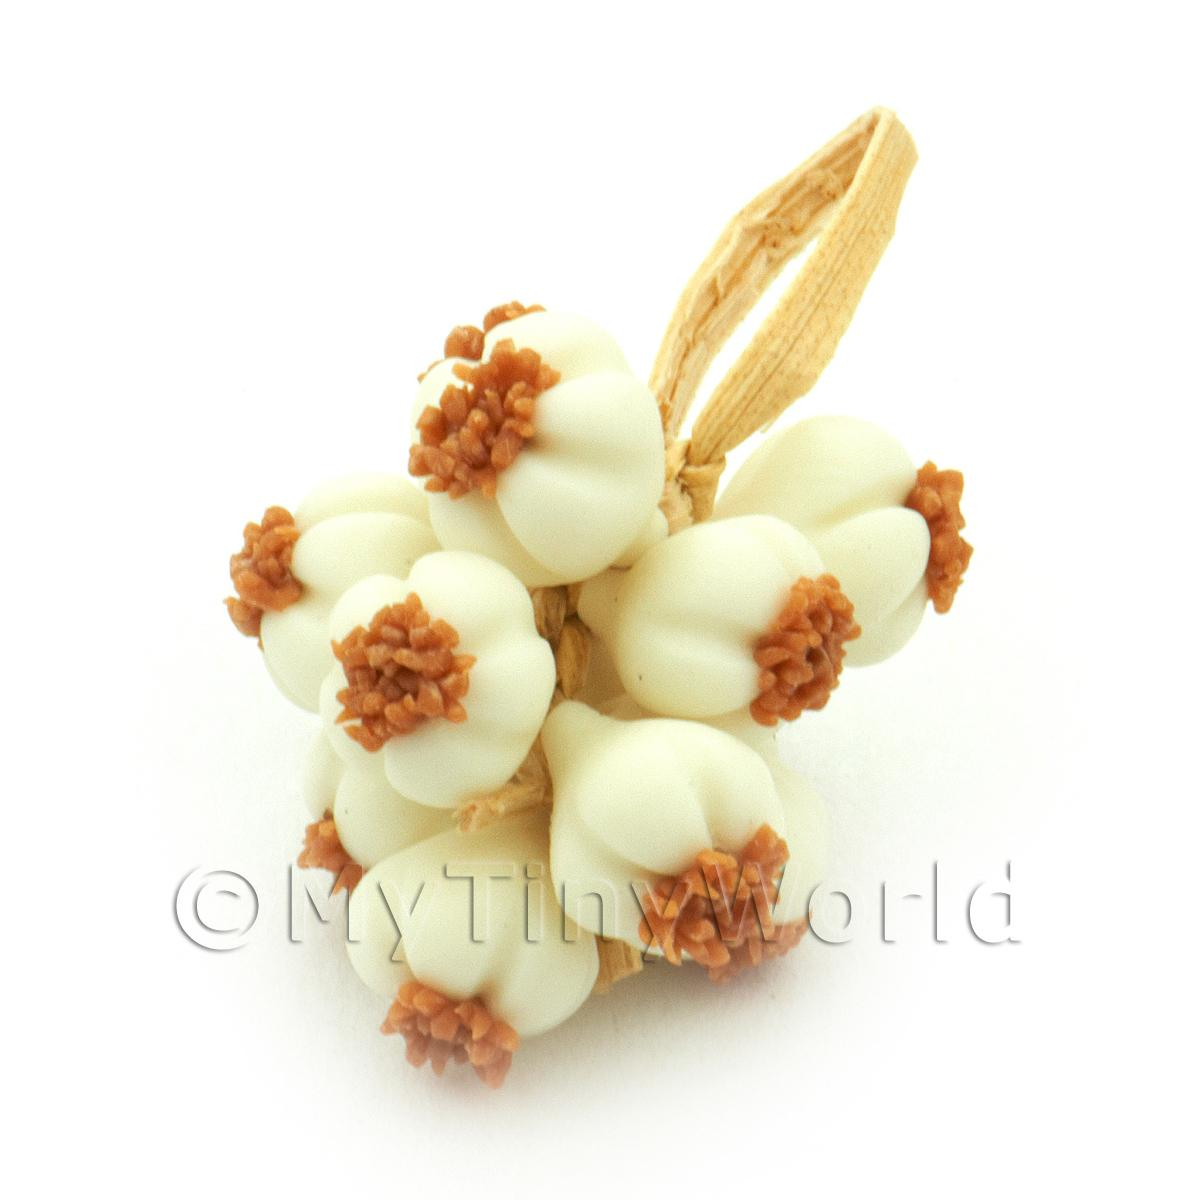 Dolls House Miniature String Of Garlic Bulbs